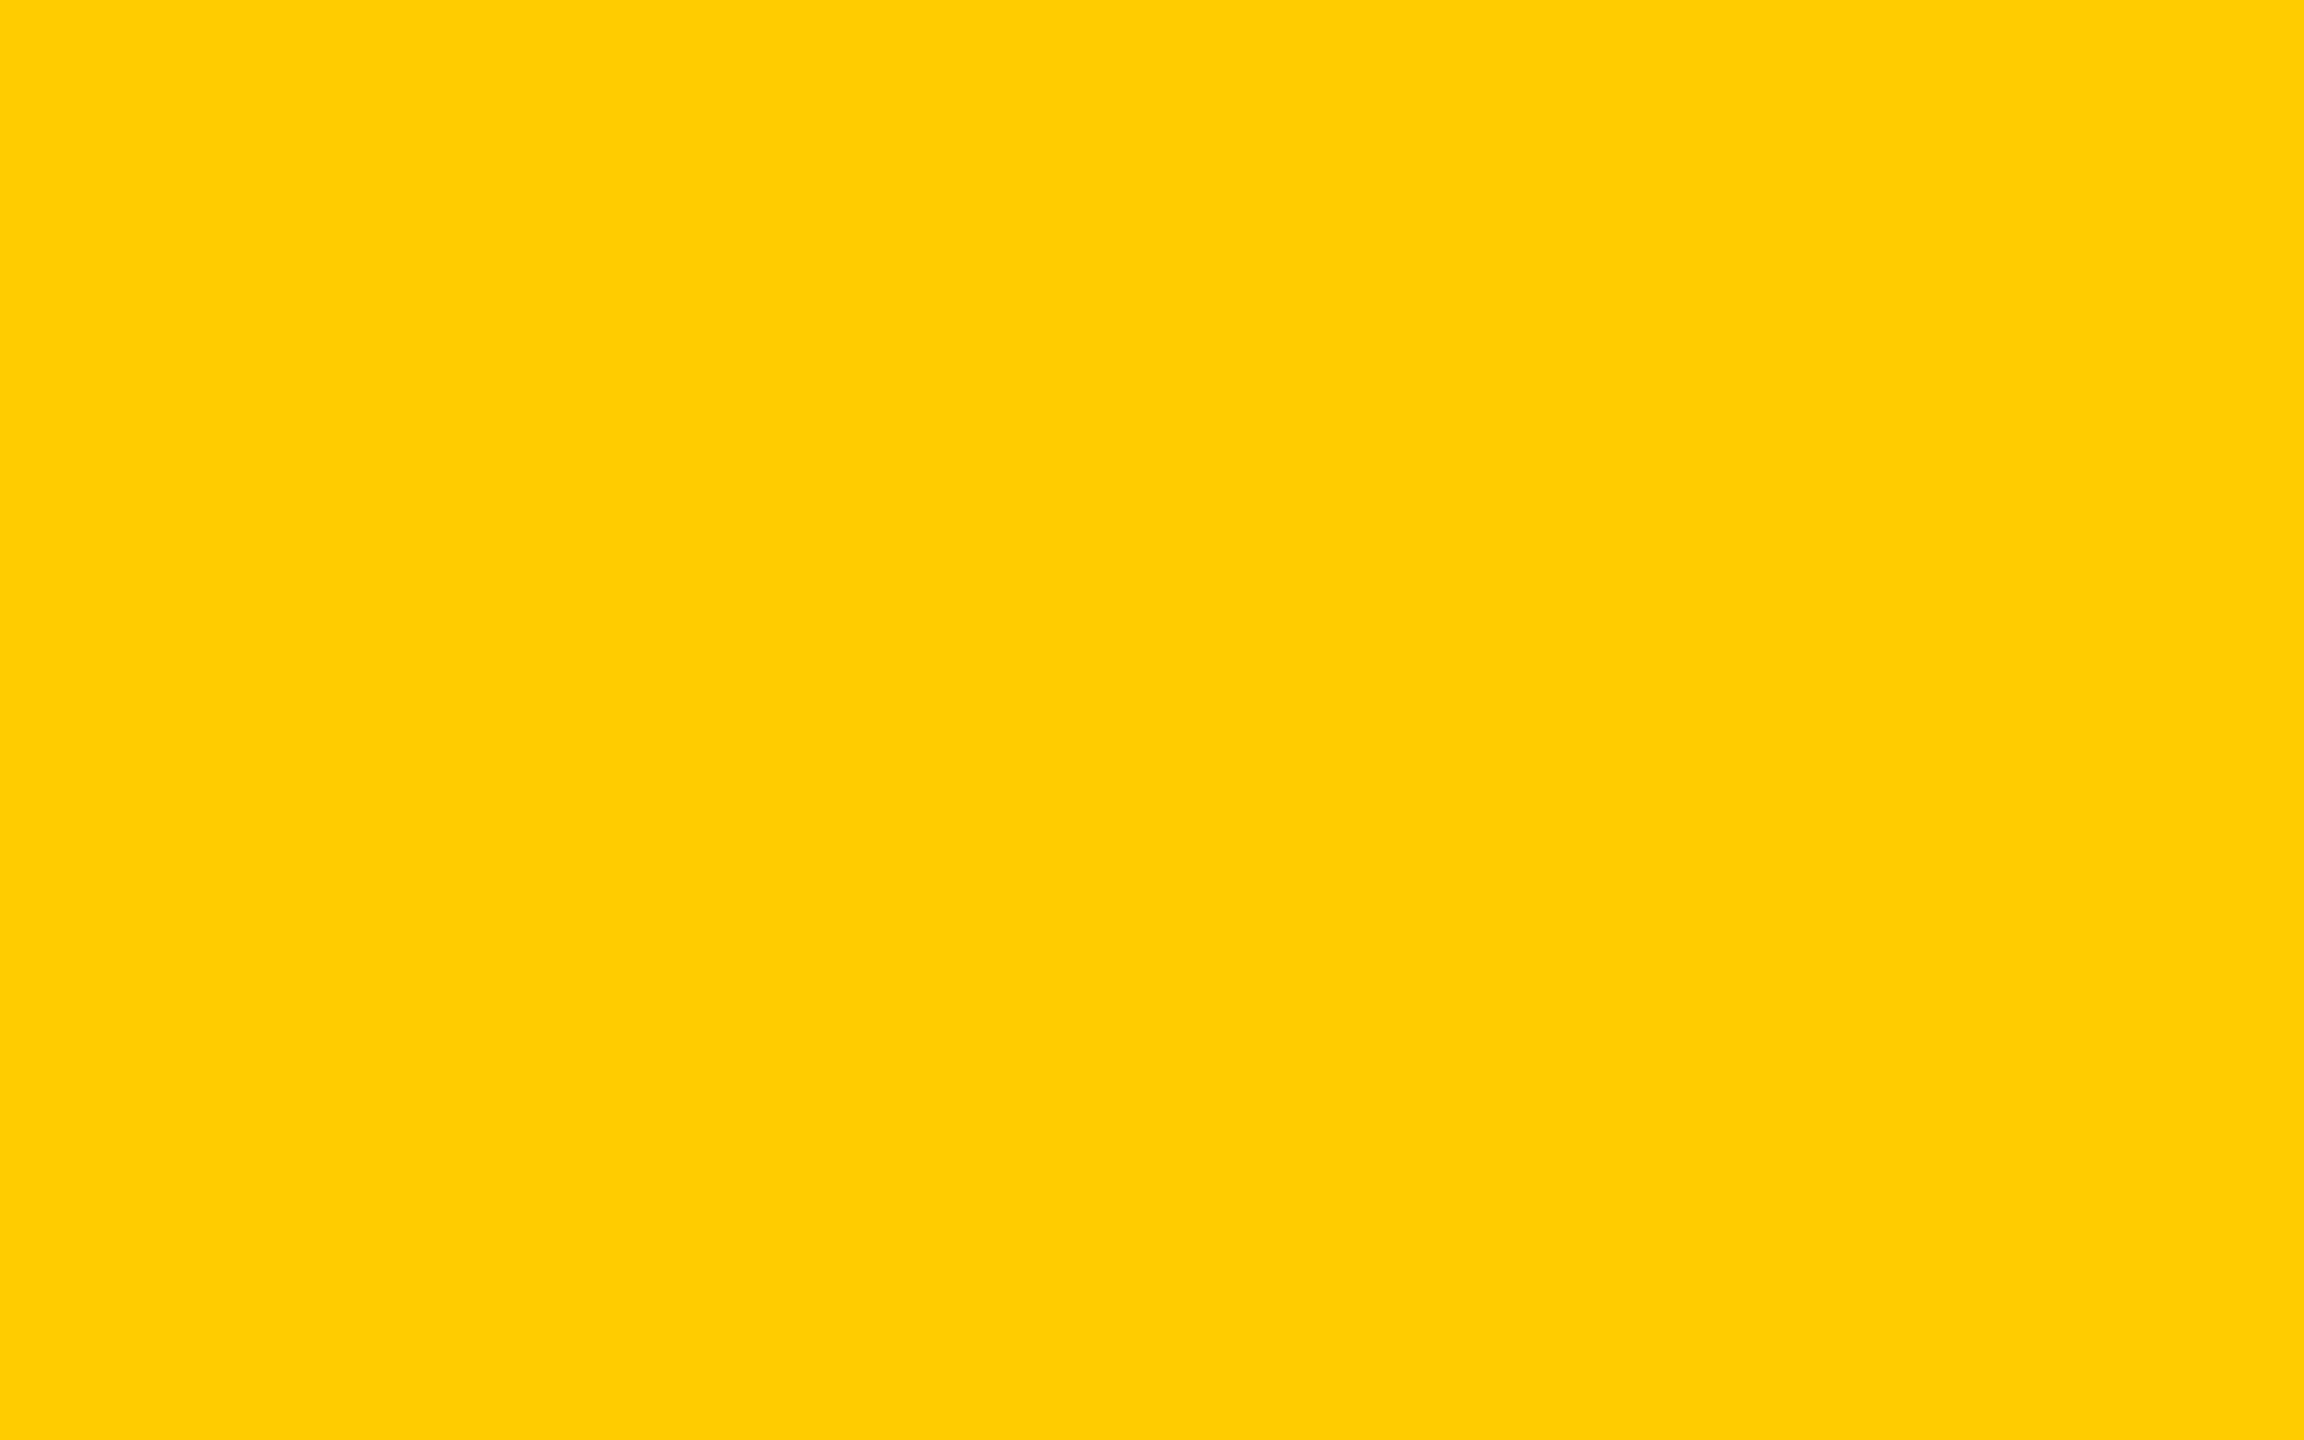 2304x1440 USC Gold Solid Color Background